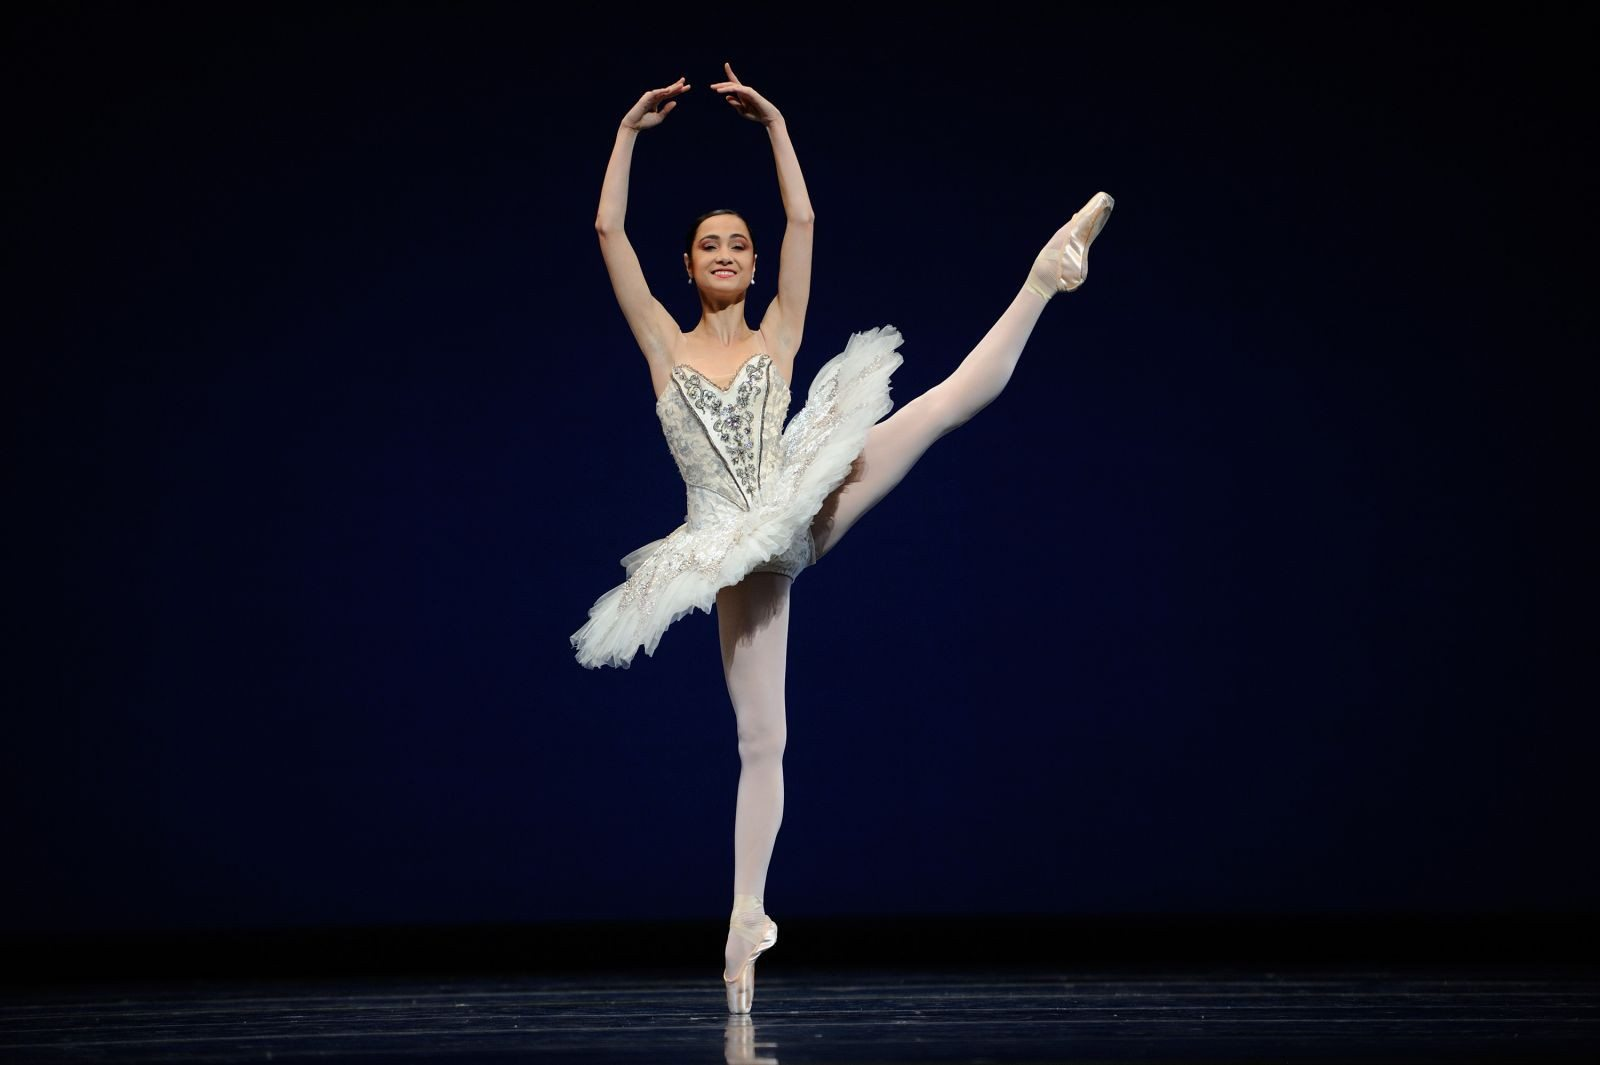 """Courtesy PhotoSan Francisco Balllet principal dancer Mathilde Froustey was stunning in """"Grand Pas Classique"""" at the company's 81st season gala performance."""